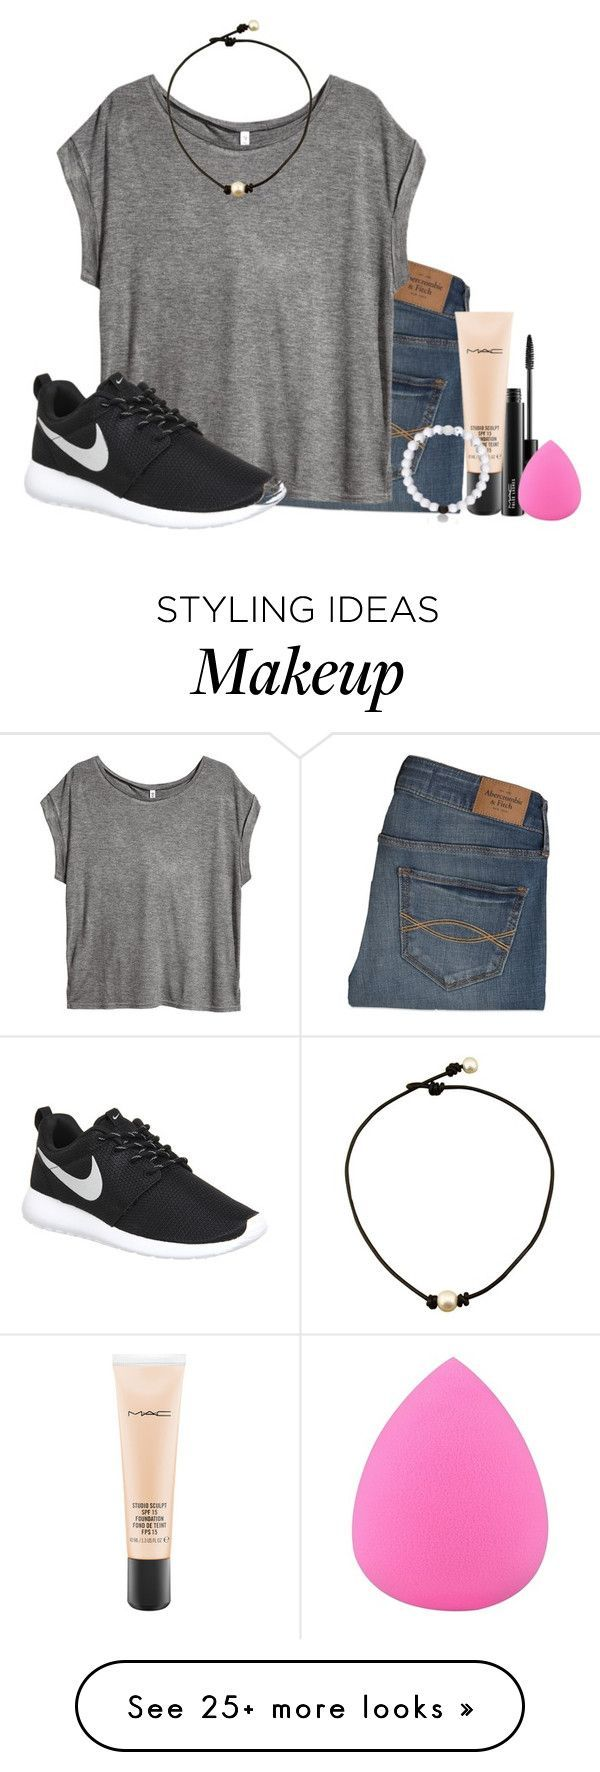 """you wanted this, not me. so why keep staring at me?"" by ellababy13 on Polyvore featuring Abercrombie & Fitch, MAC Cosmetics, H&M, Zodaca, NIKE, women's clothing, women's fashion, women, female and woman"